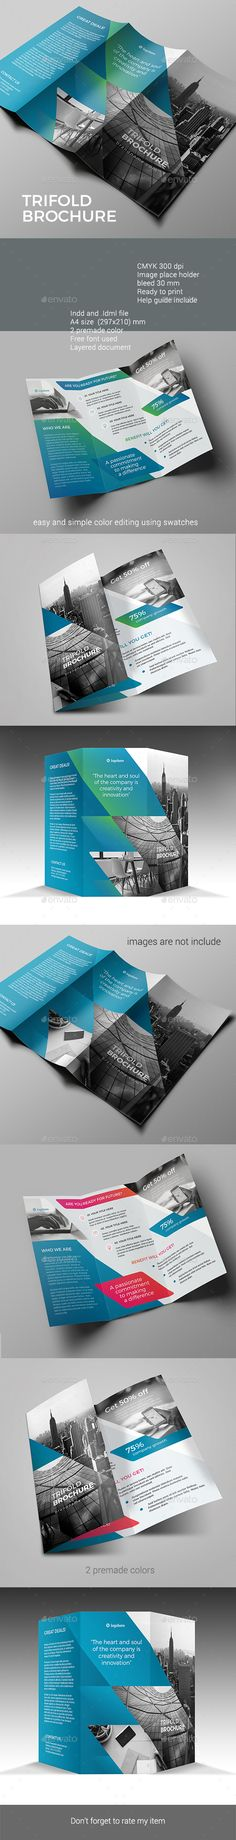 College University Brochure Brochures, Brochure template and College - university brochure template